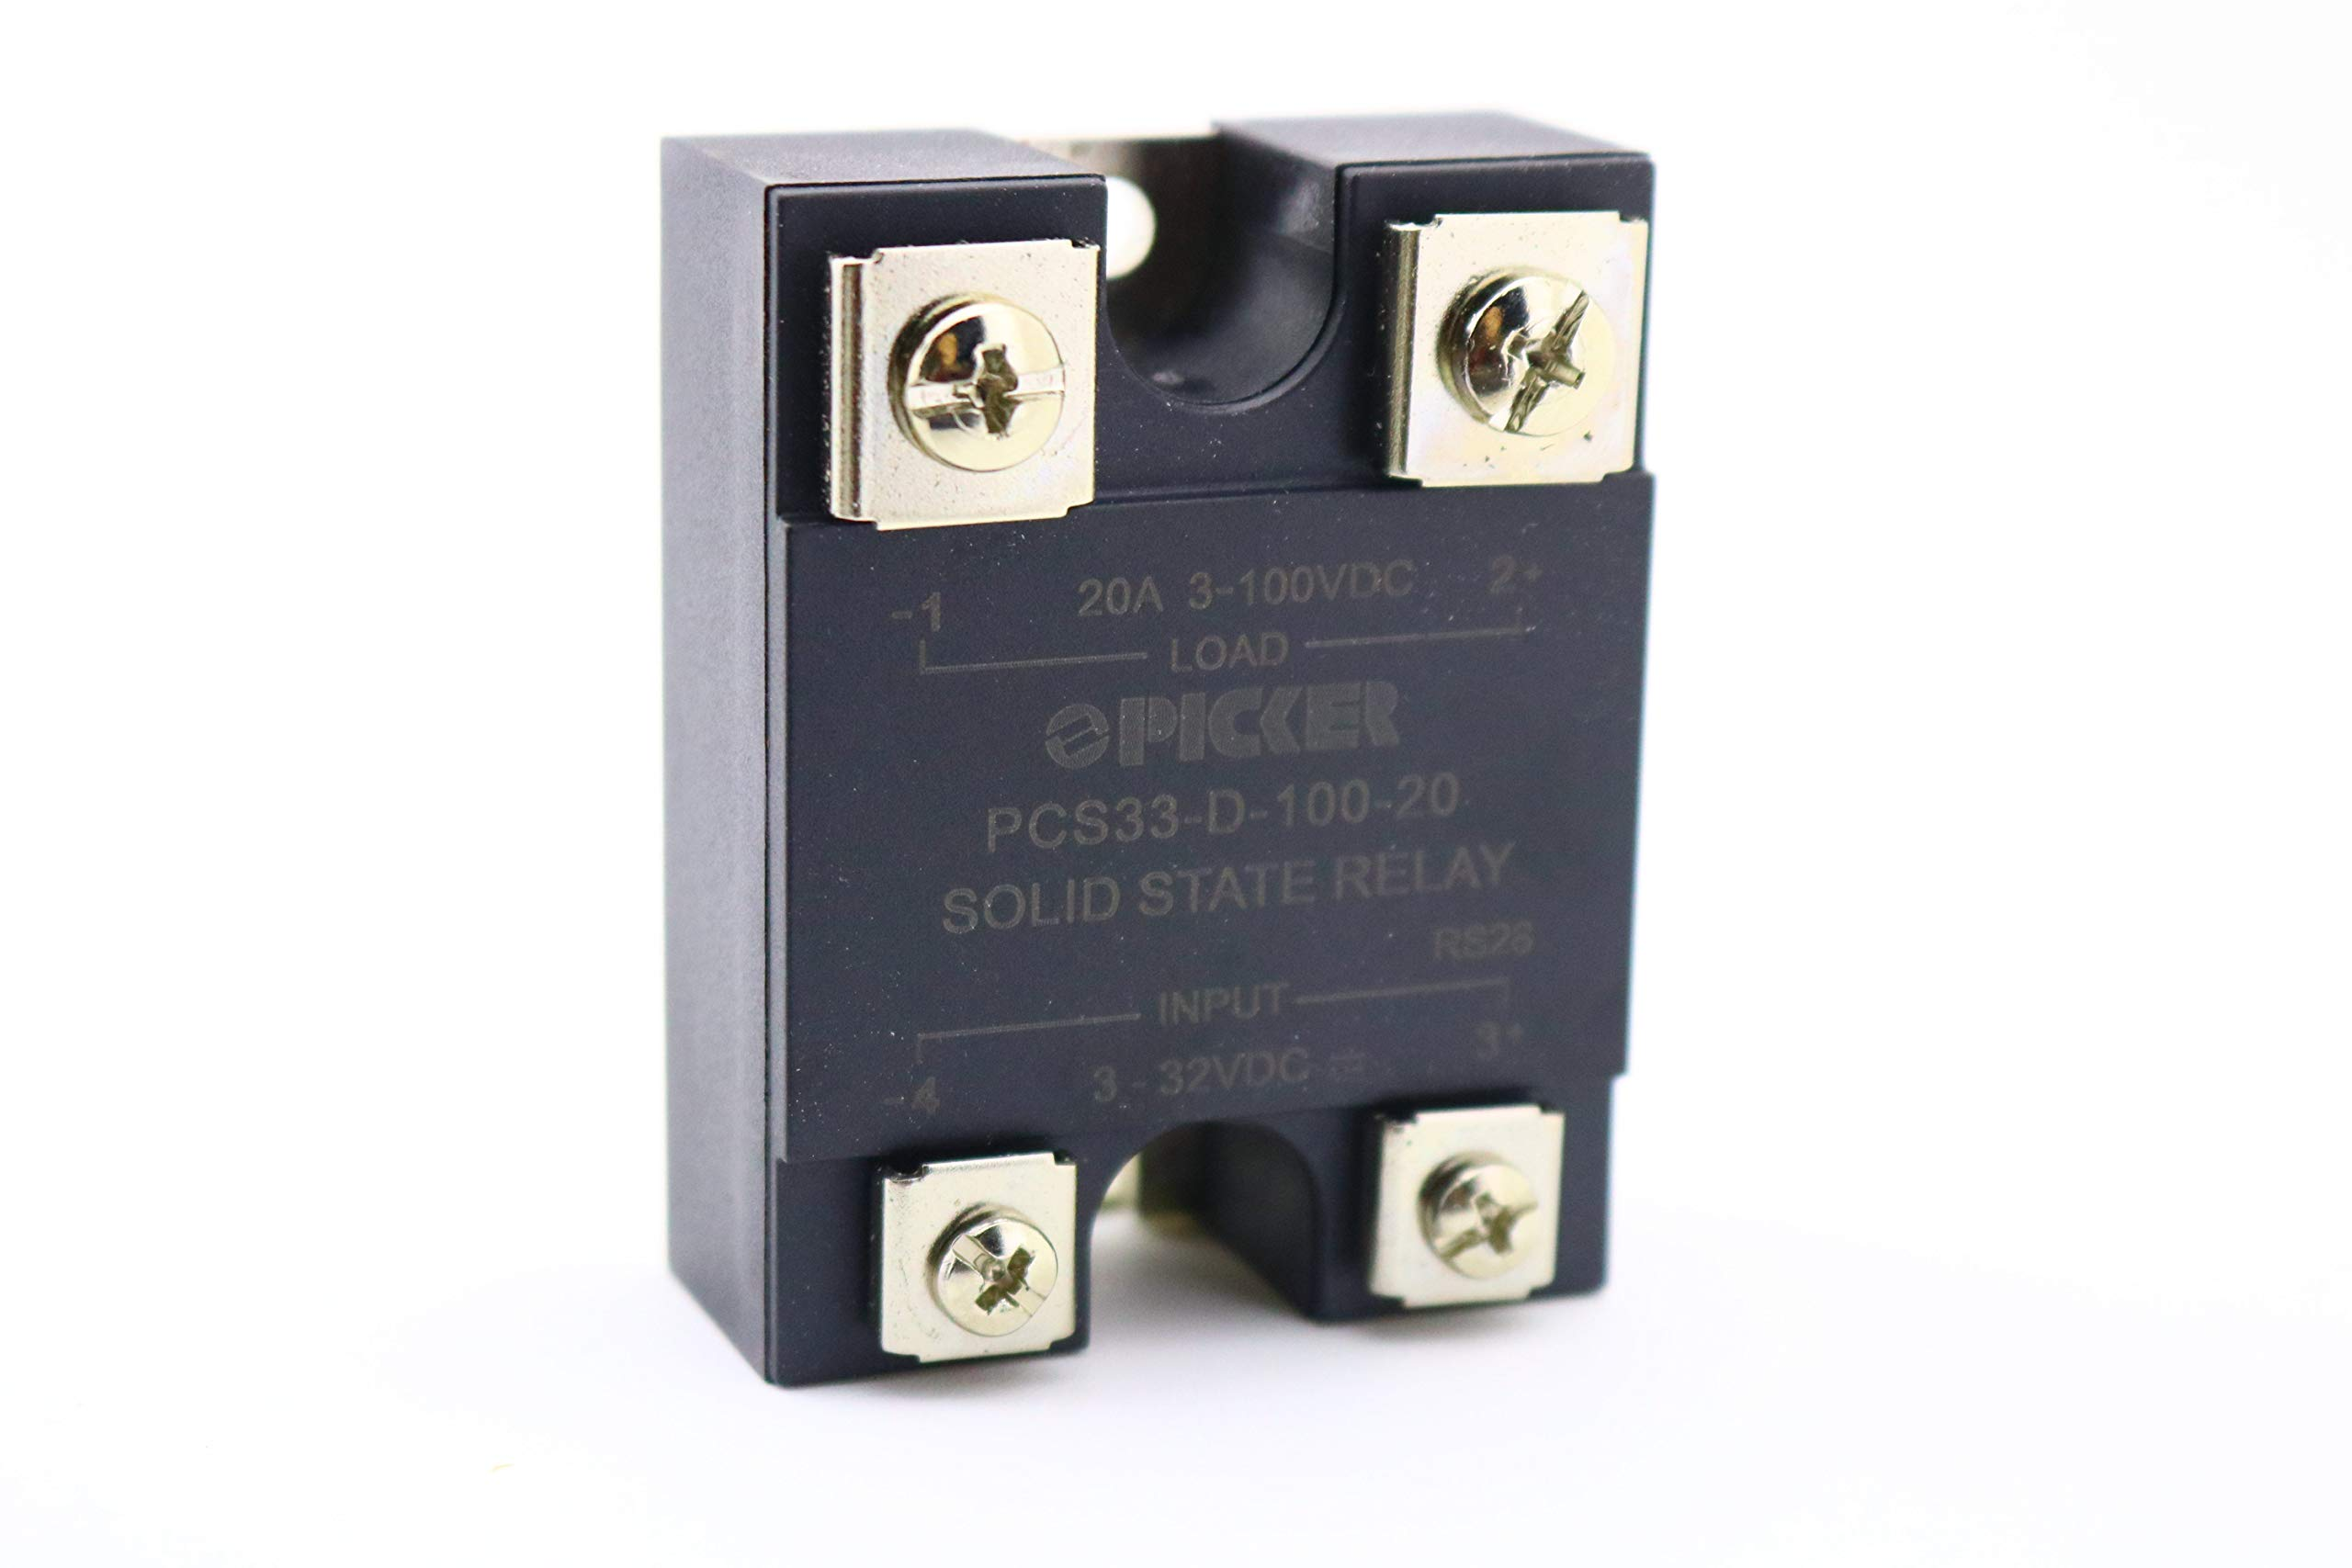 PCS33-D-100-20 | 20 Amp, 0-100 VDC MOSFET DC Output | UL Rated | 3-32 VDC Input | Hockey Puck Solid State Relay | Cross: Crydom D1D20; Crouzet 84134860; Opto22 DC60S-5